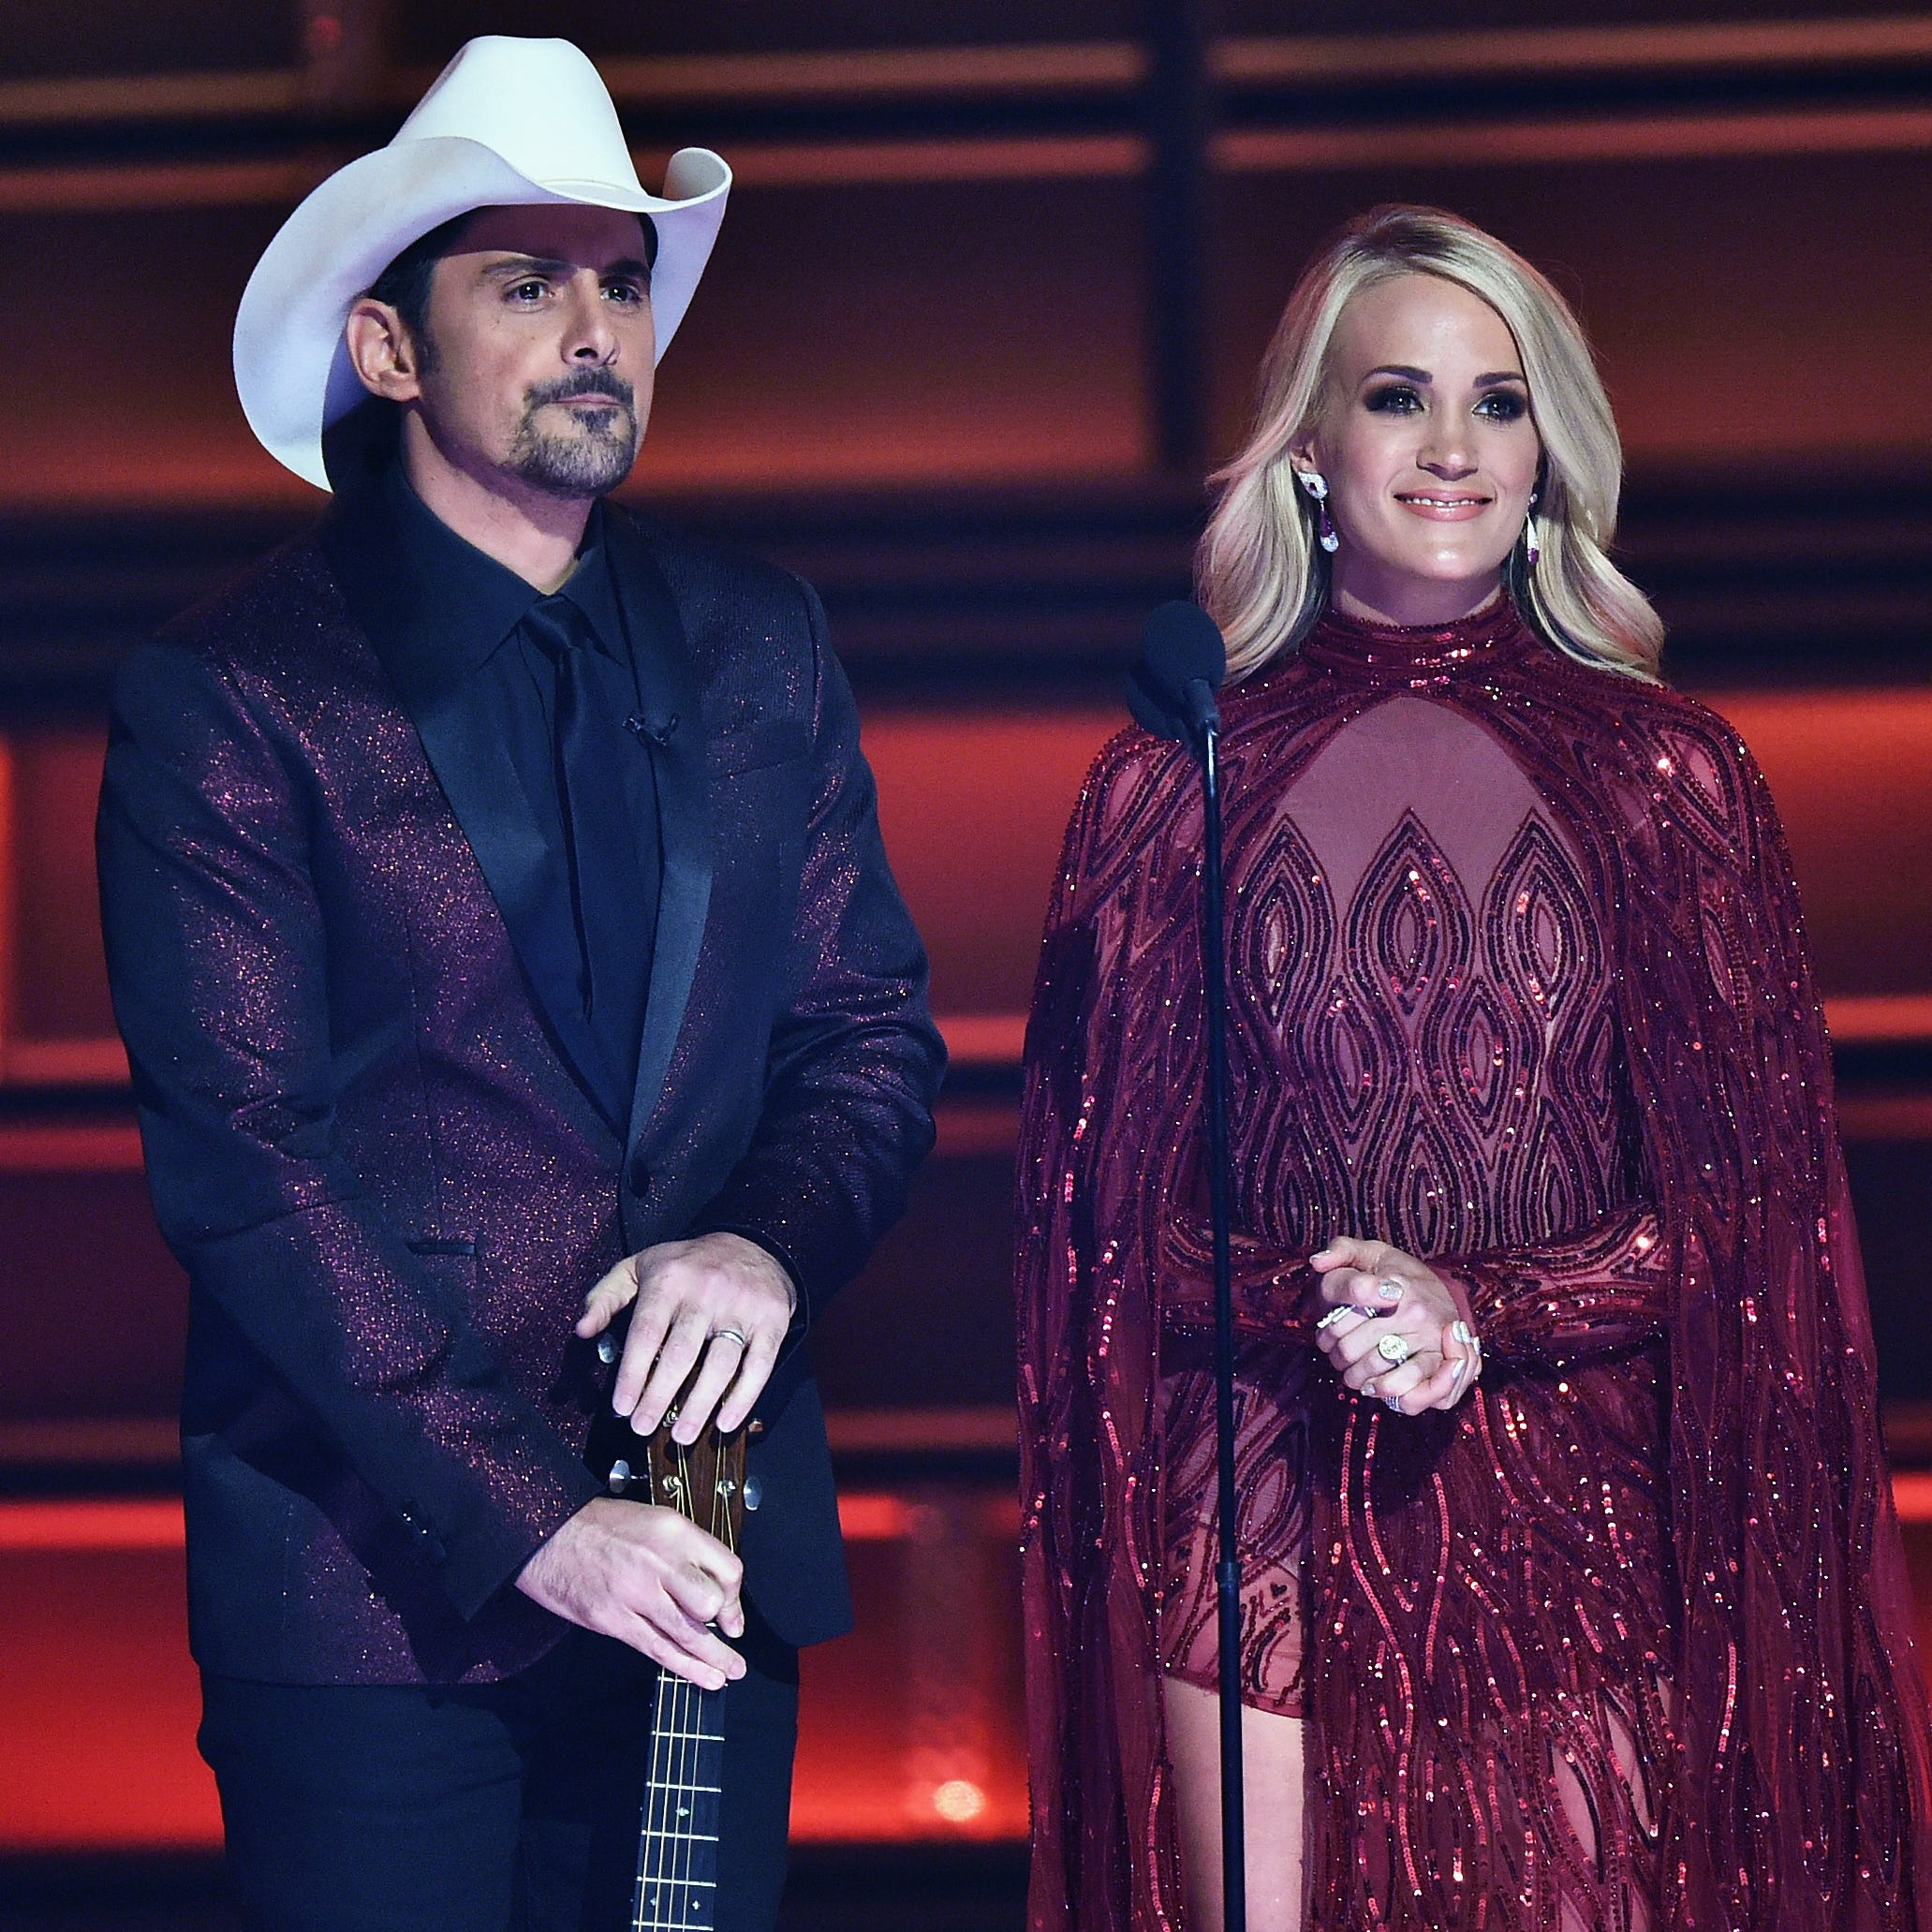 Co-hosts Brad Paisley and Carrie Underwood speak onstage at the 51st annual CMA Awards. They will be hosting the award show again this year.